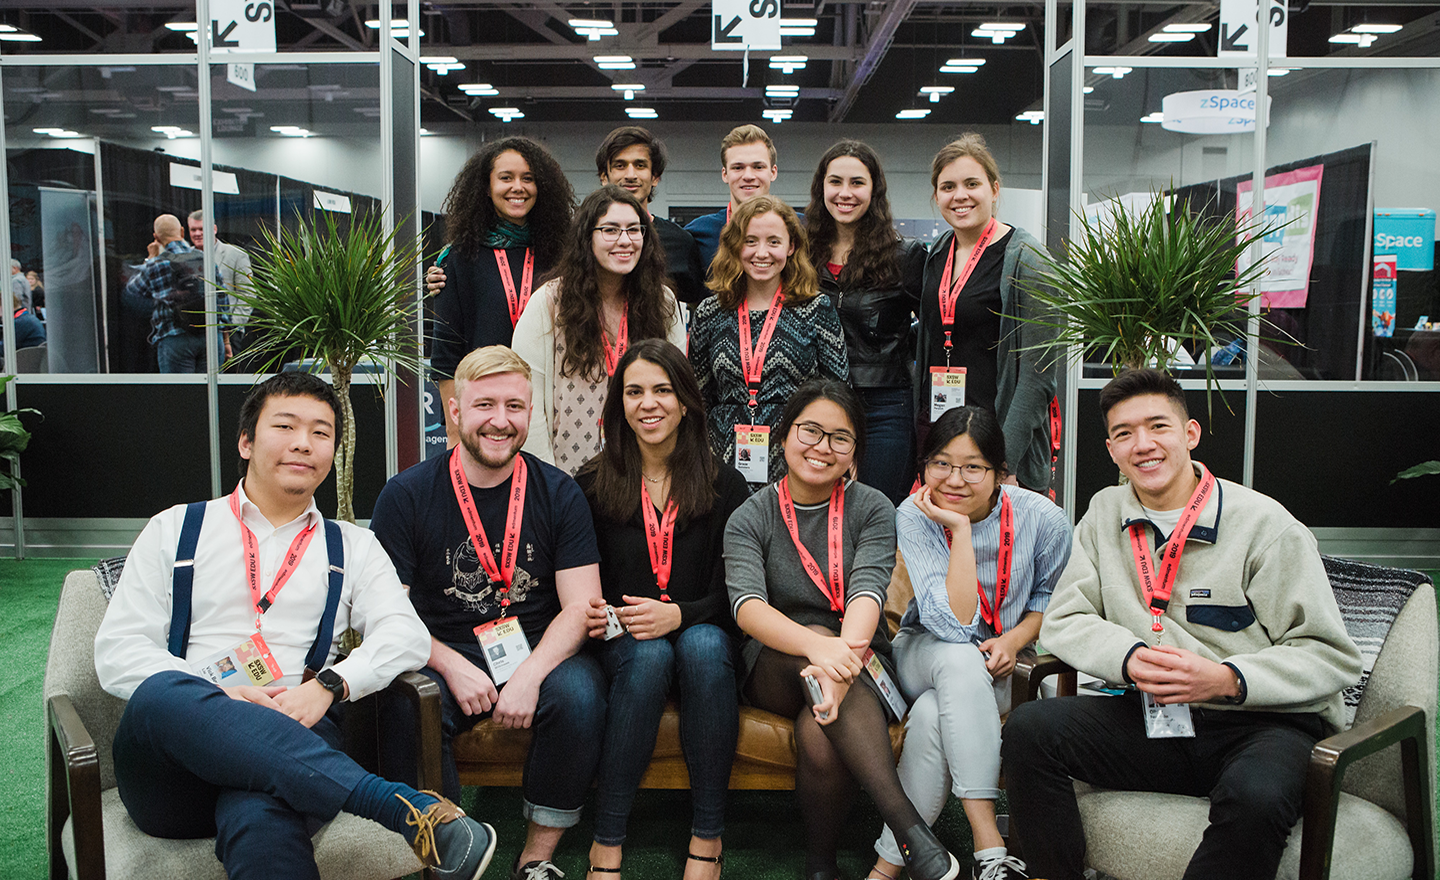 SXSW EDU 2019 Student Meet Up photo by Akash Kataria